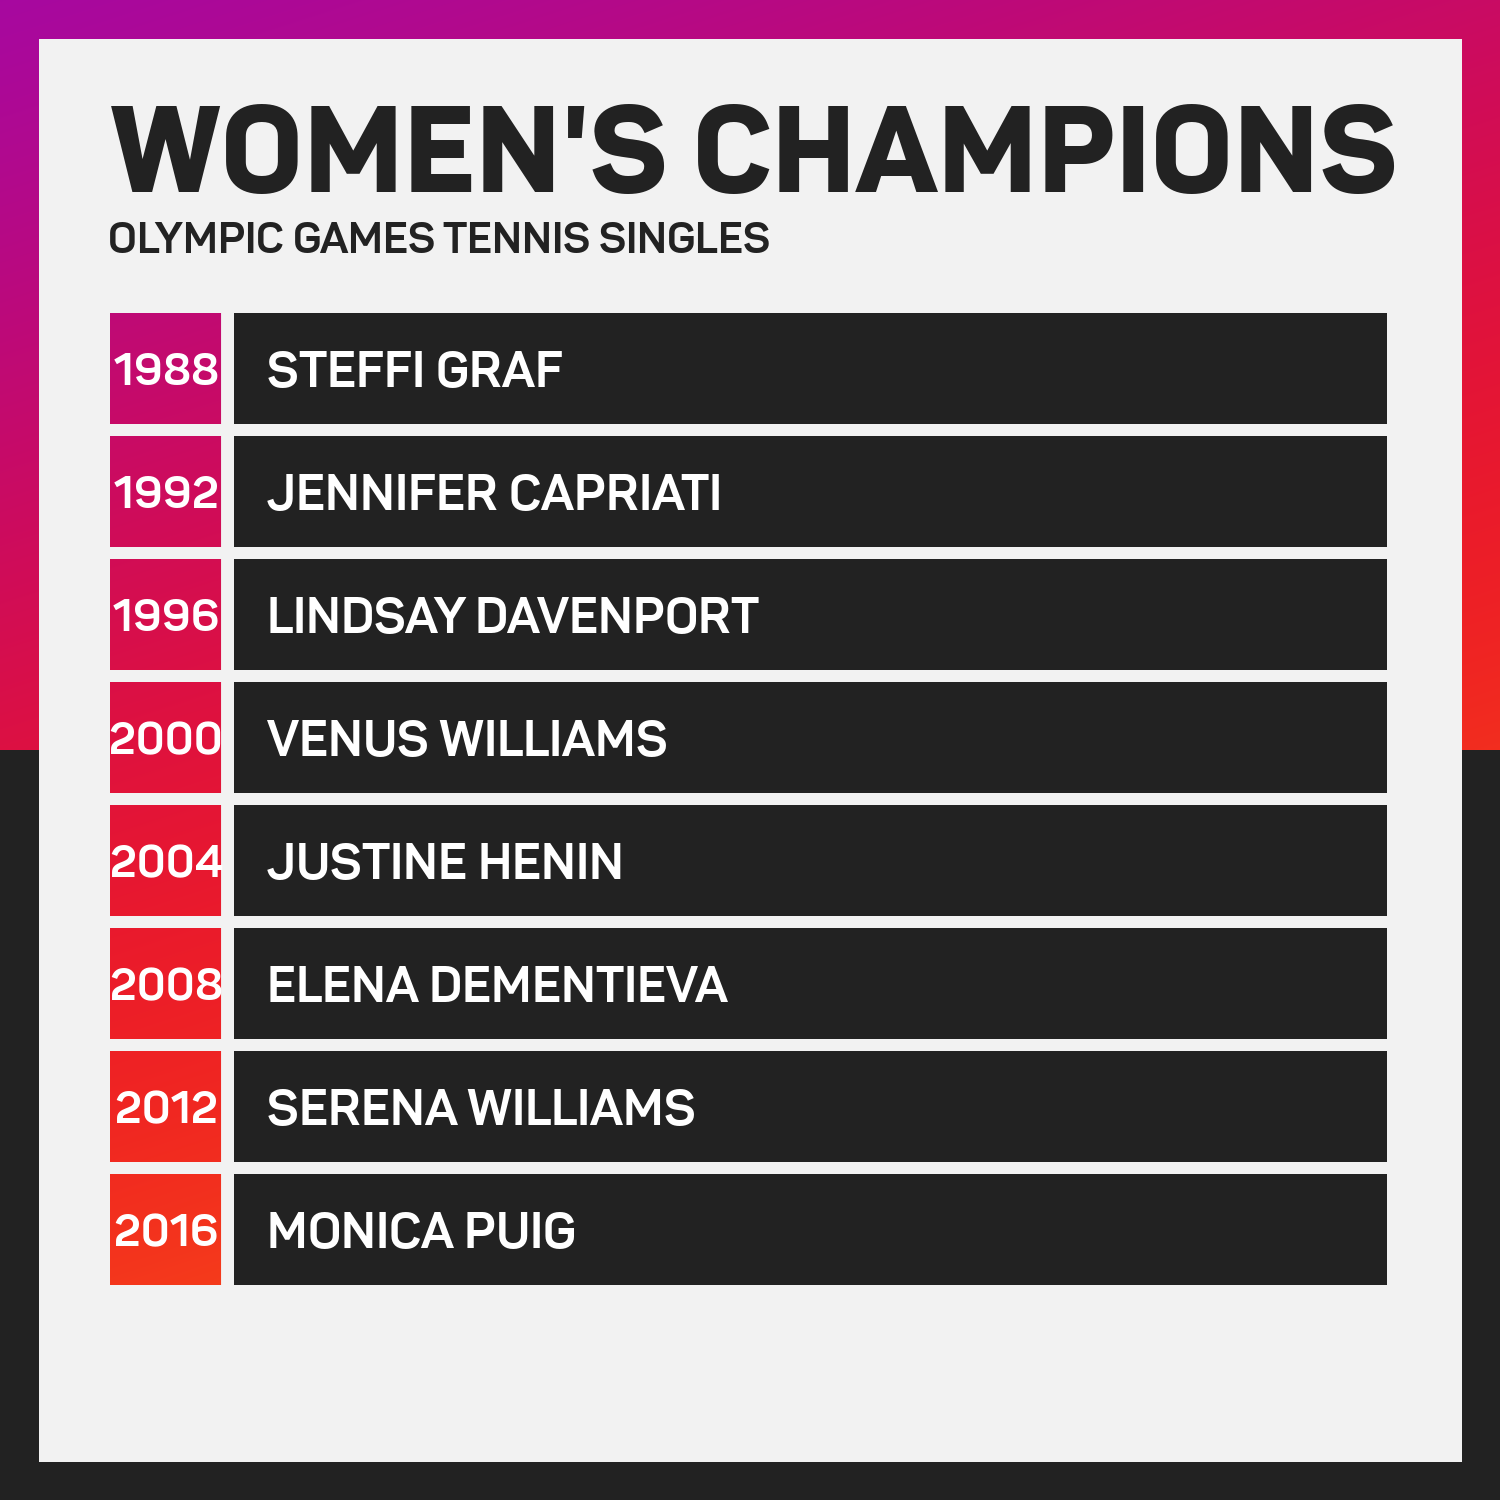 Olympic Games tennis women's singles champions since 1988